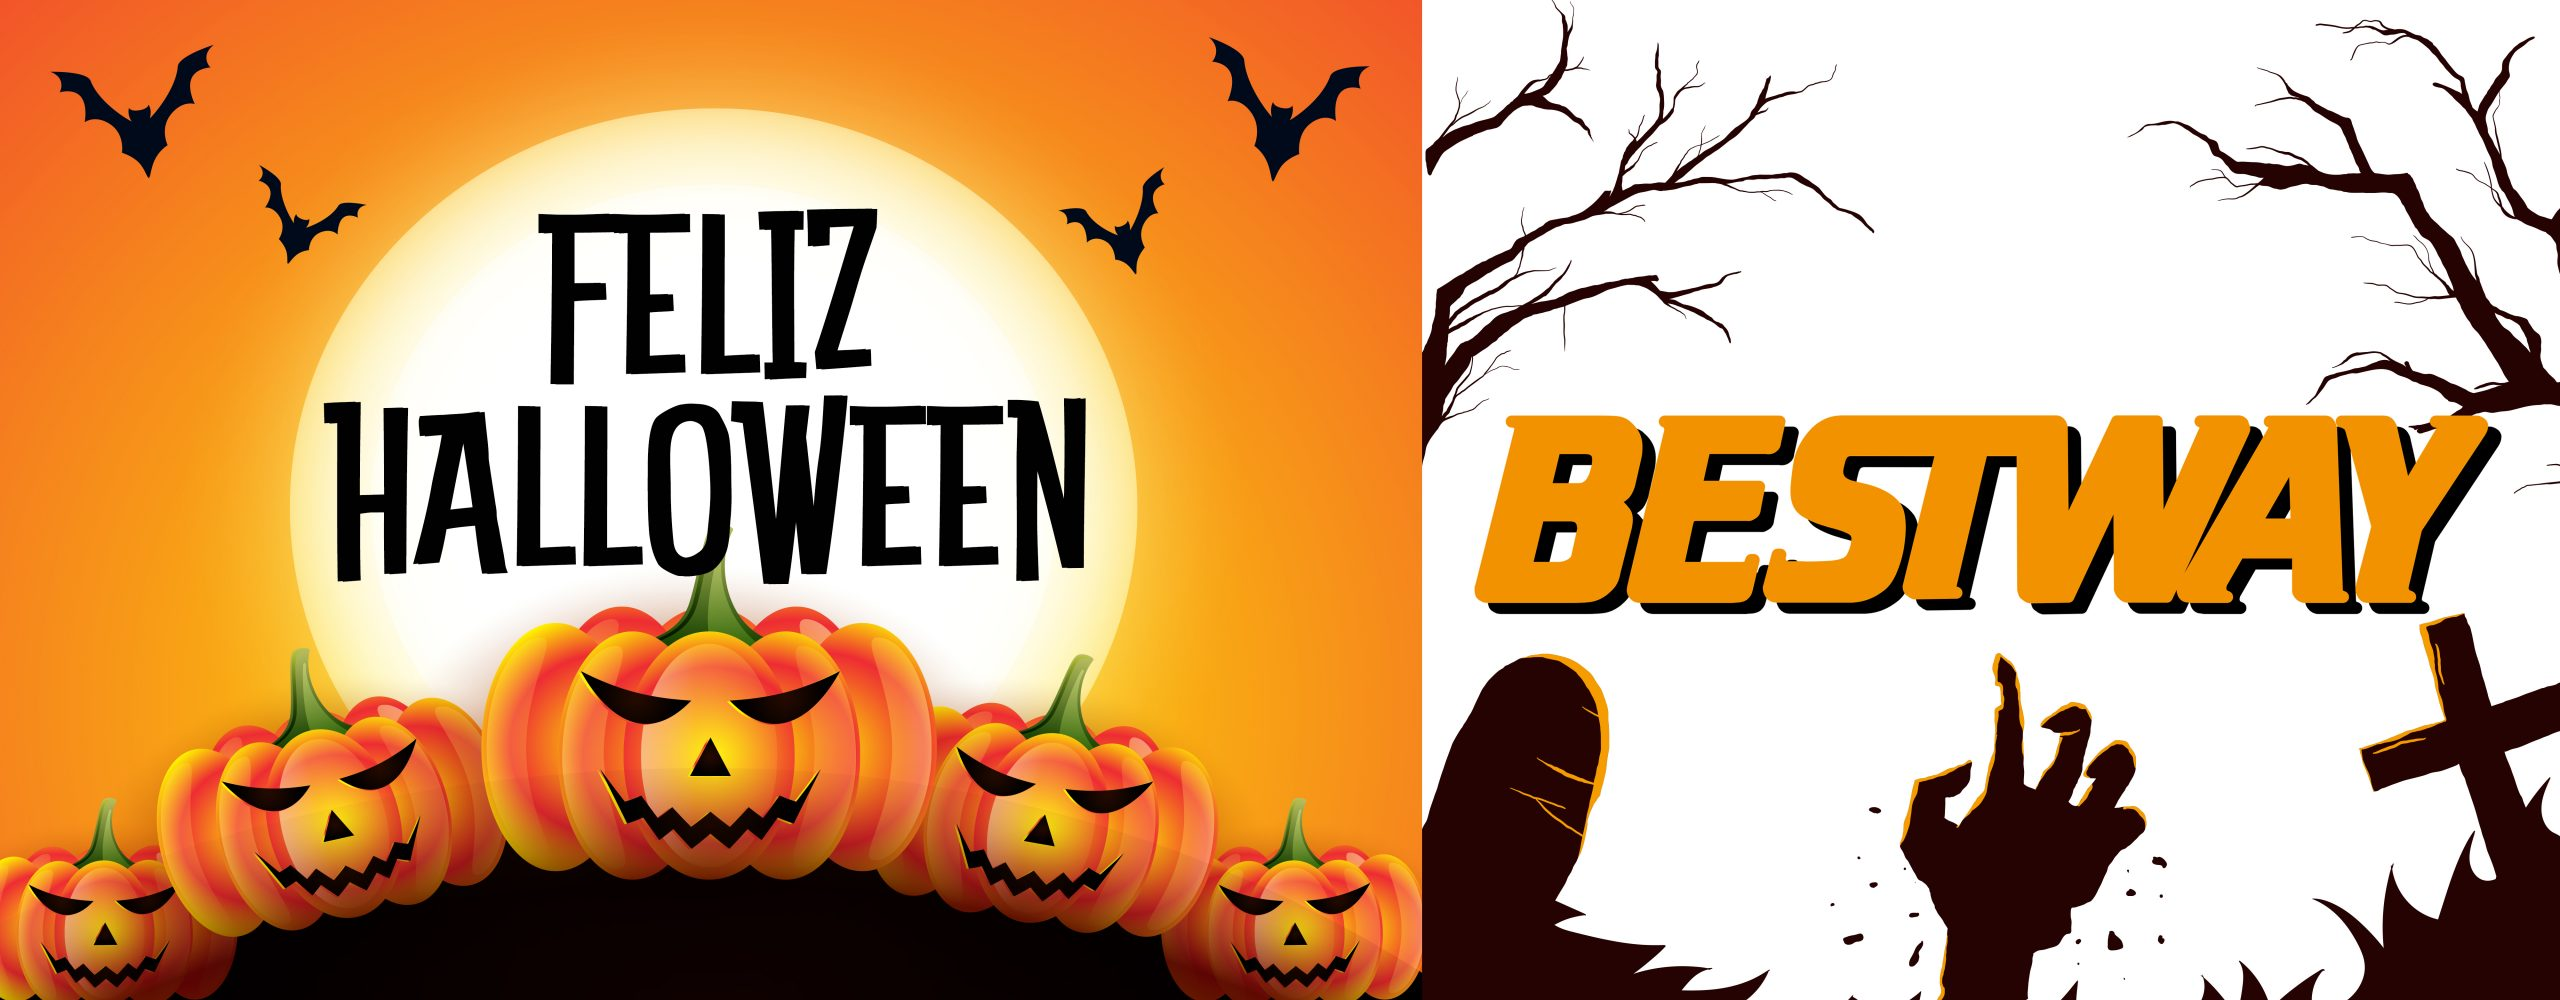 BANNER HALLOWEENB